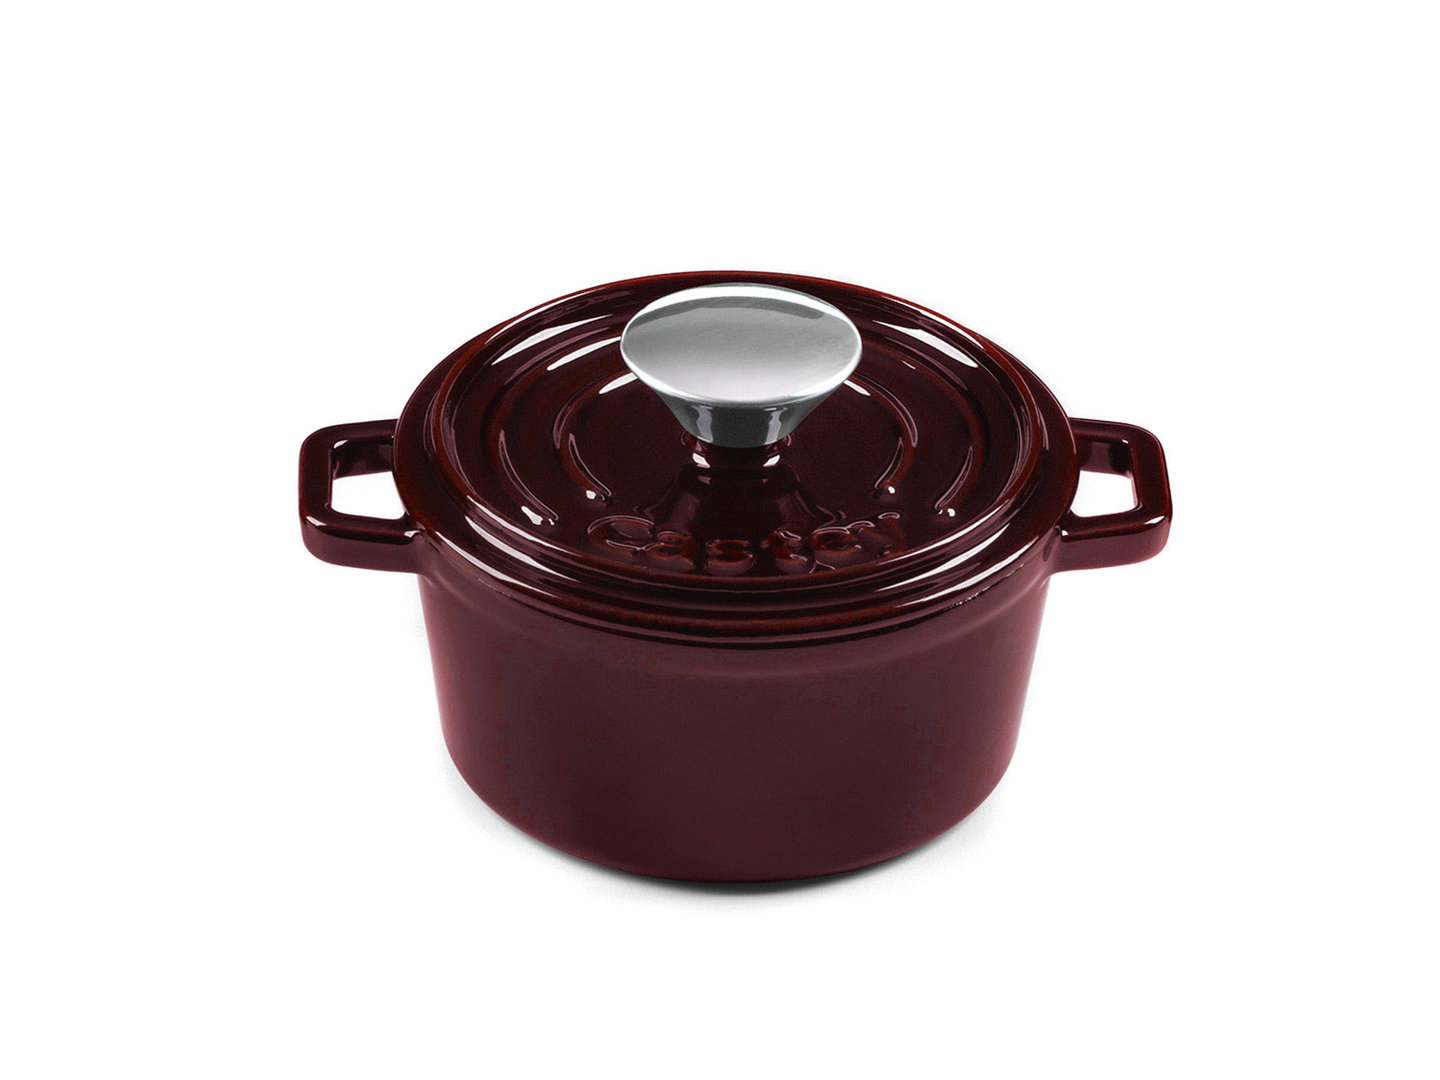 CASTEY Gusseisen Topf COCOTTE 14 cm PURPUR Emaille